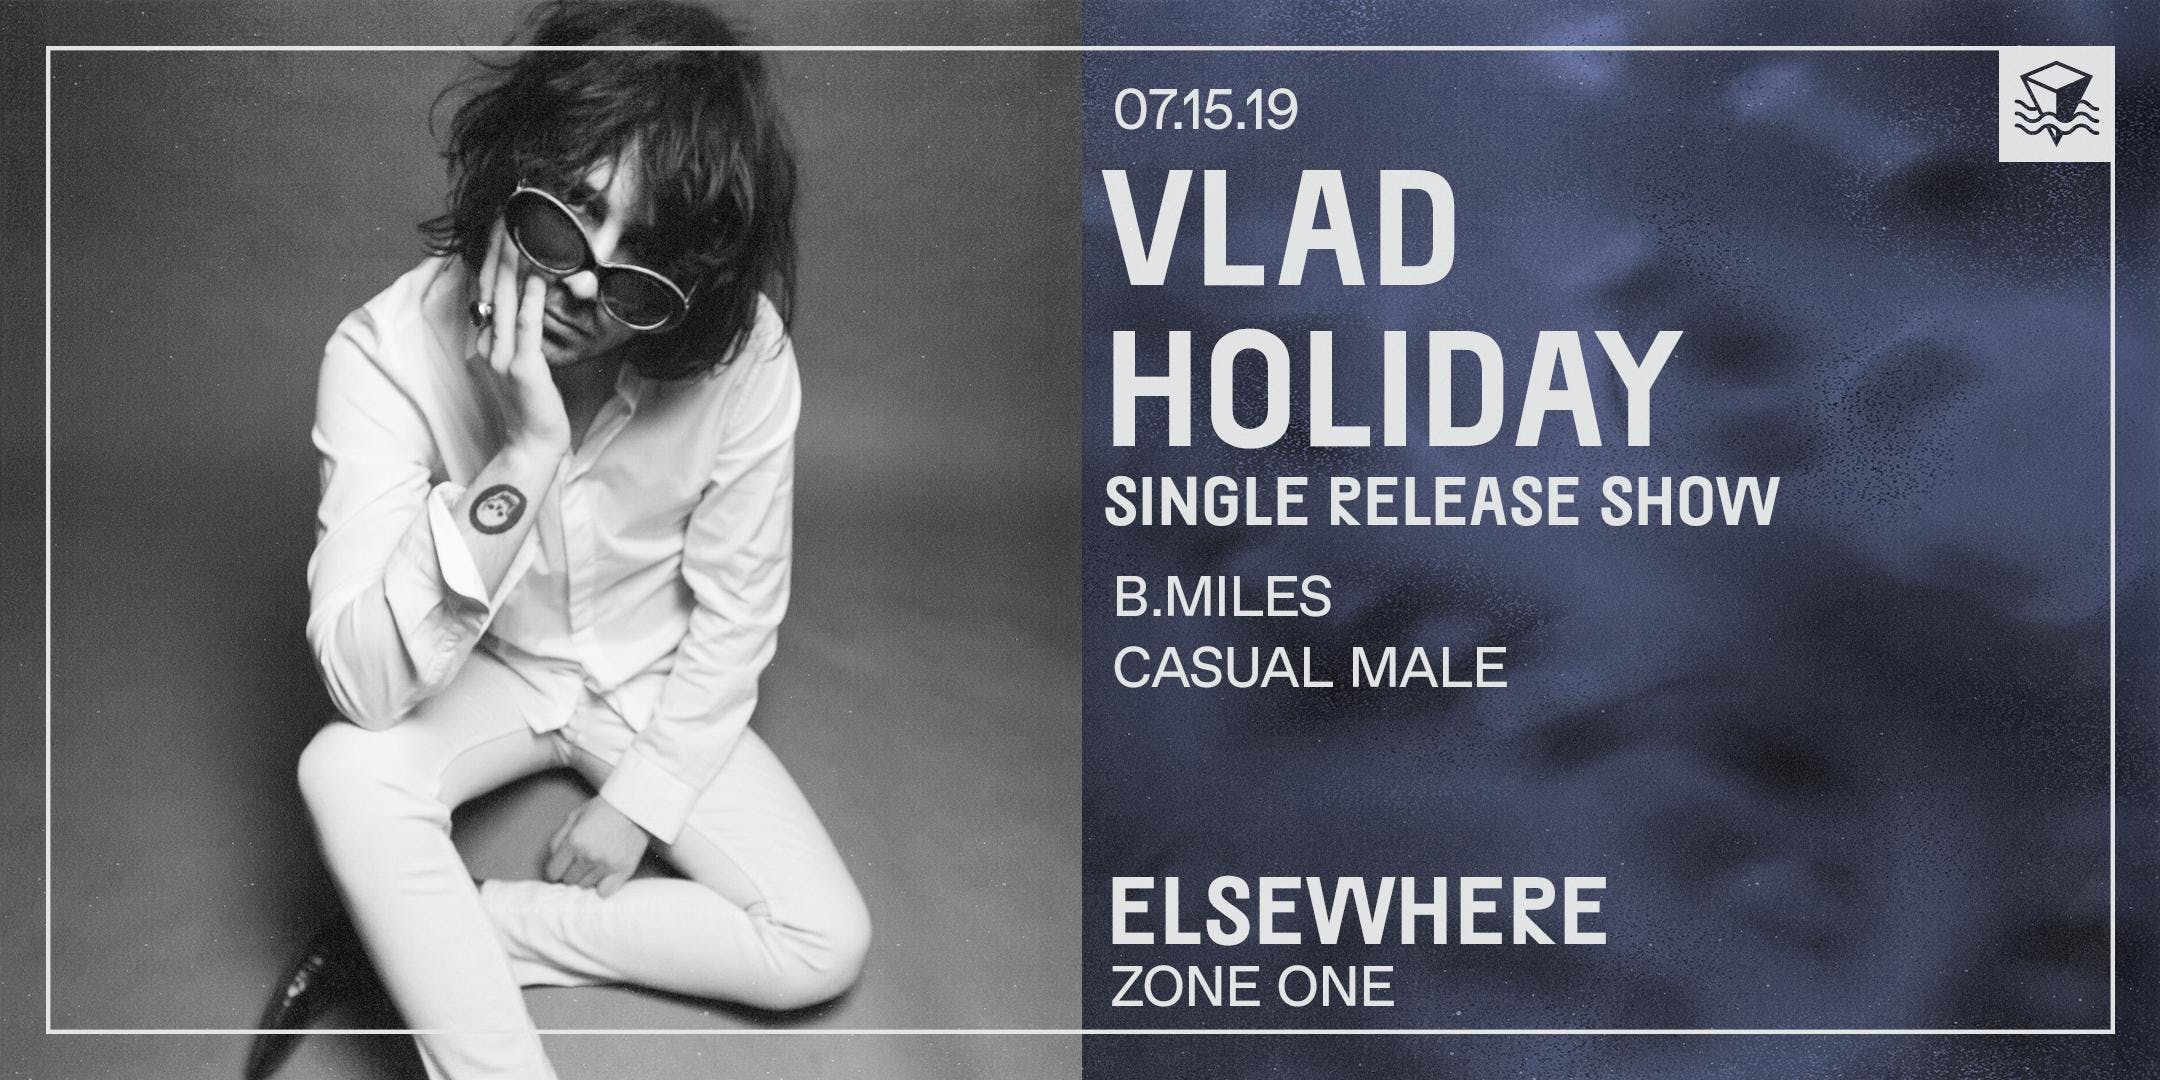 Vlad Holiday (Single Release Show)